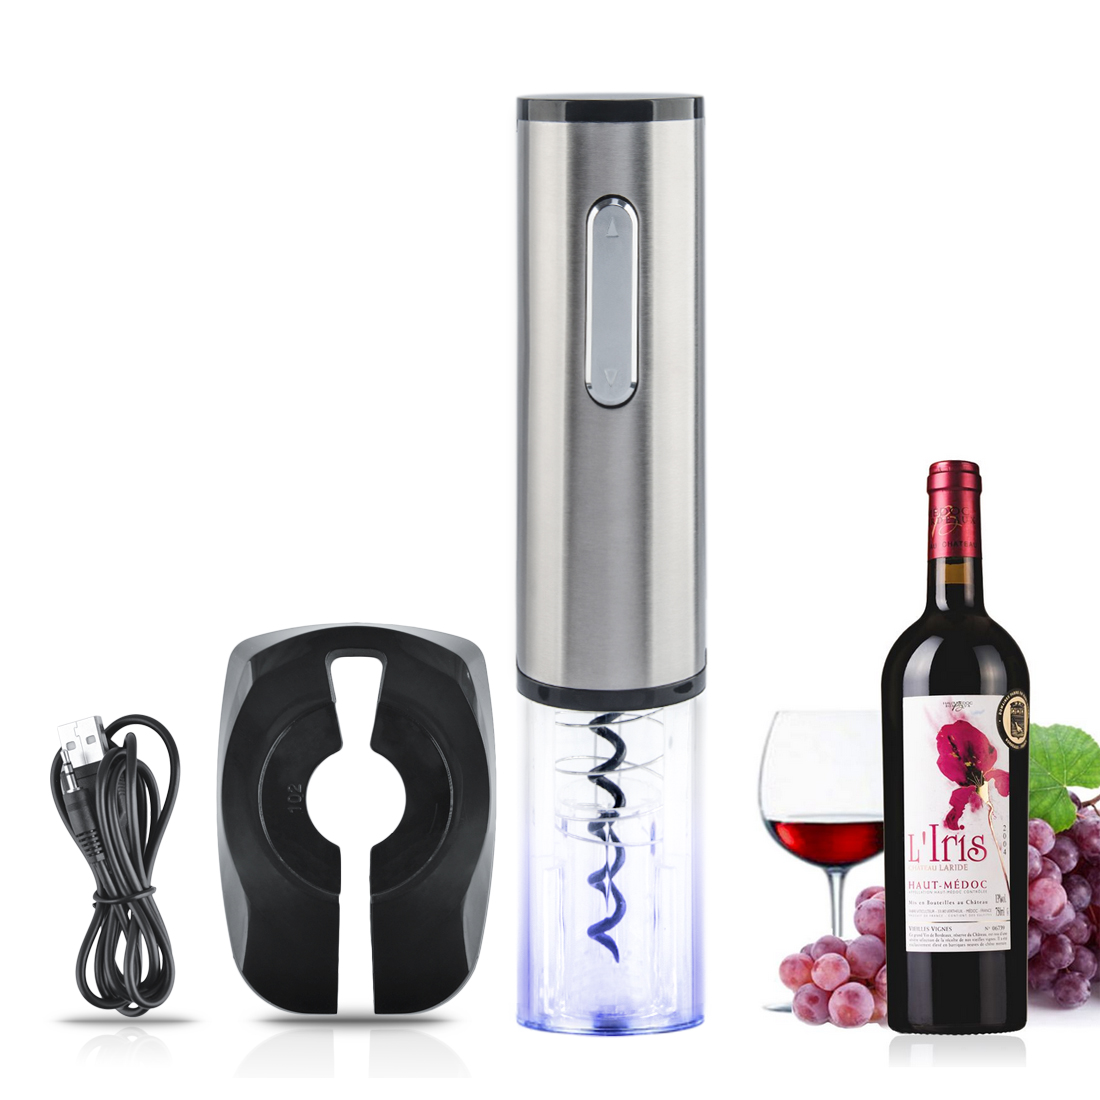 Top Quality Rechargeable Electric Wine Bottle Opener Automatic Wine Opener Corkscrew Bar Tool Silver Transparent